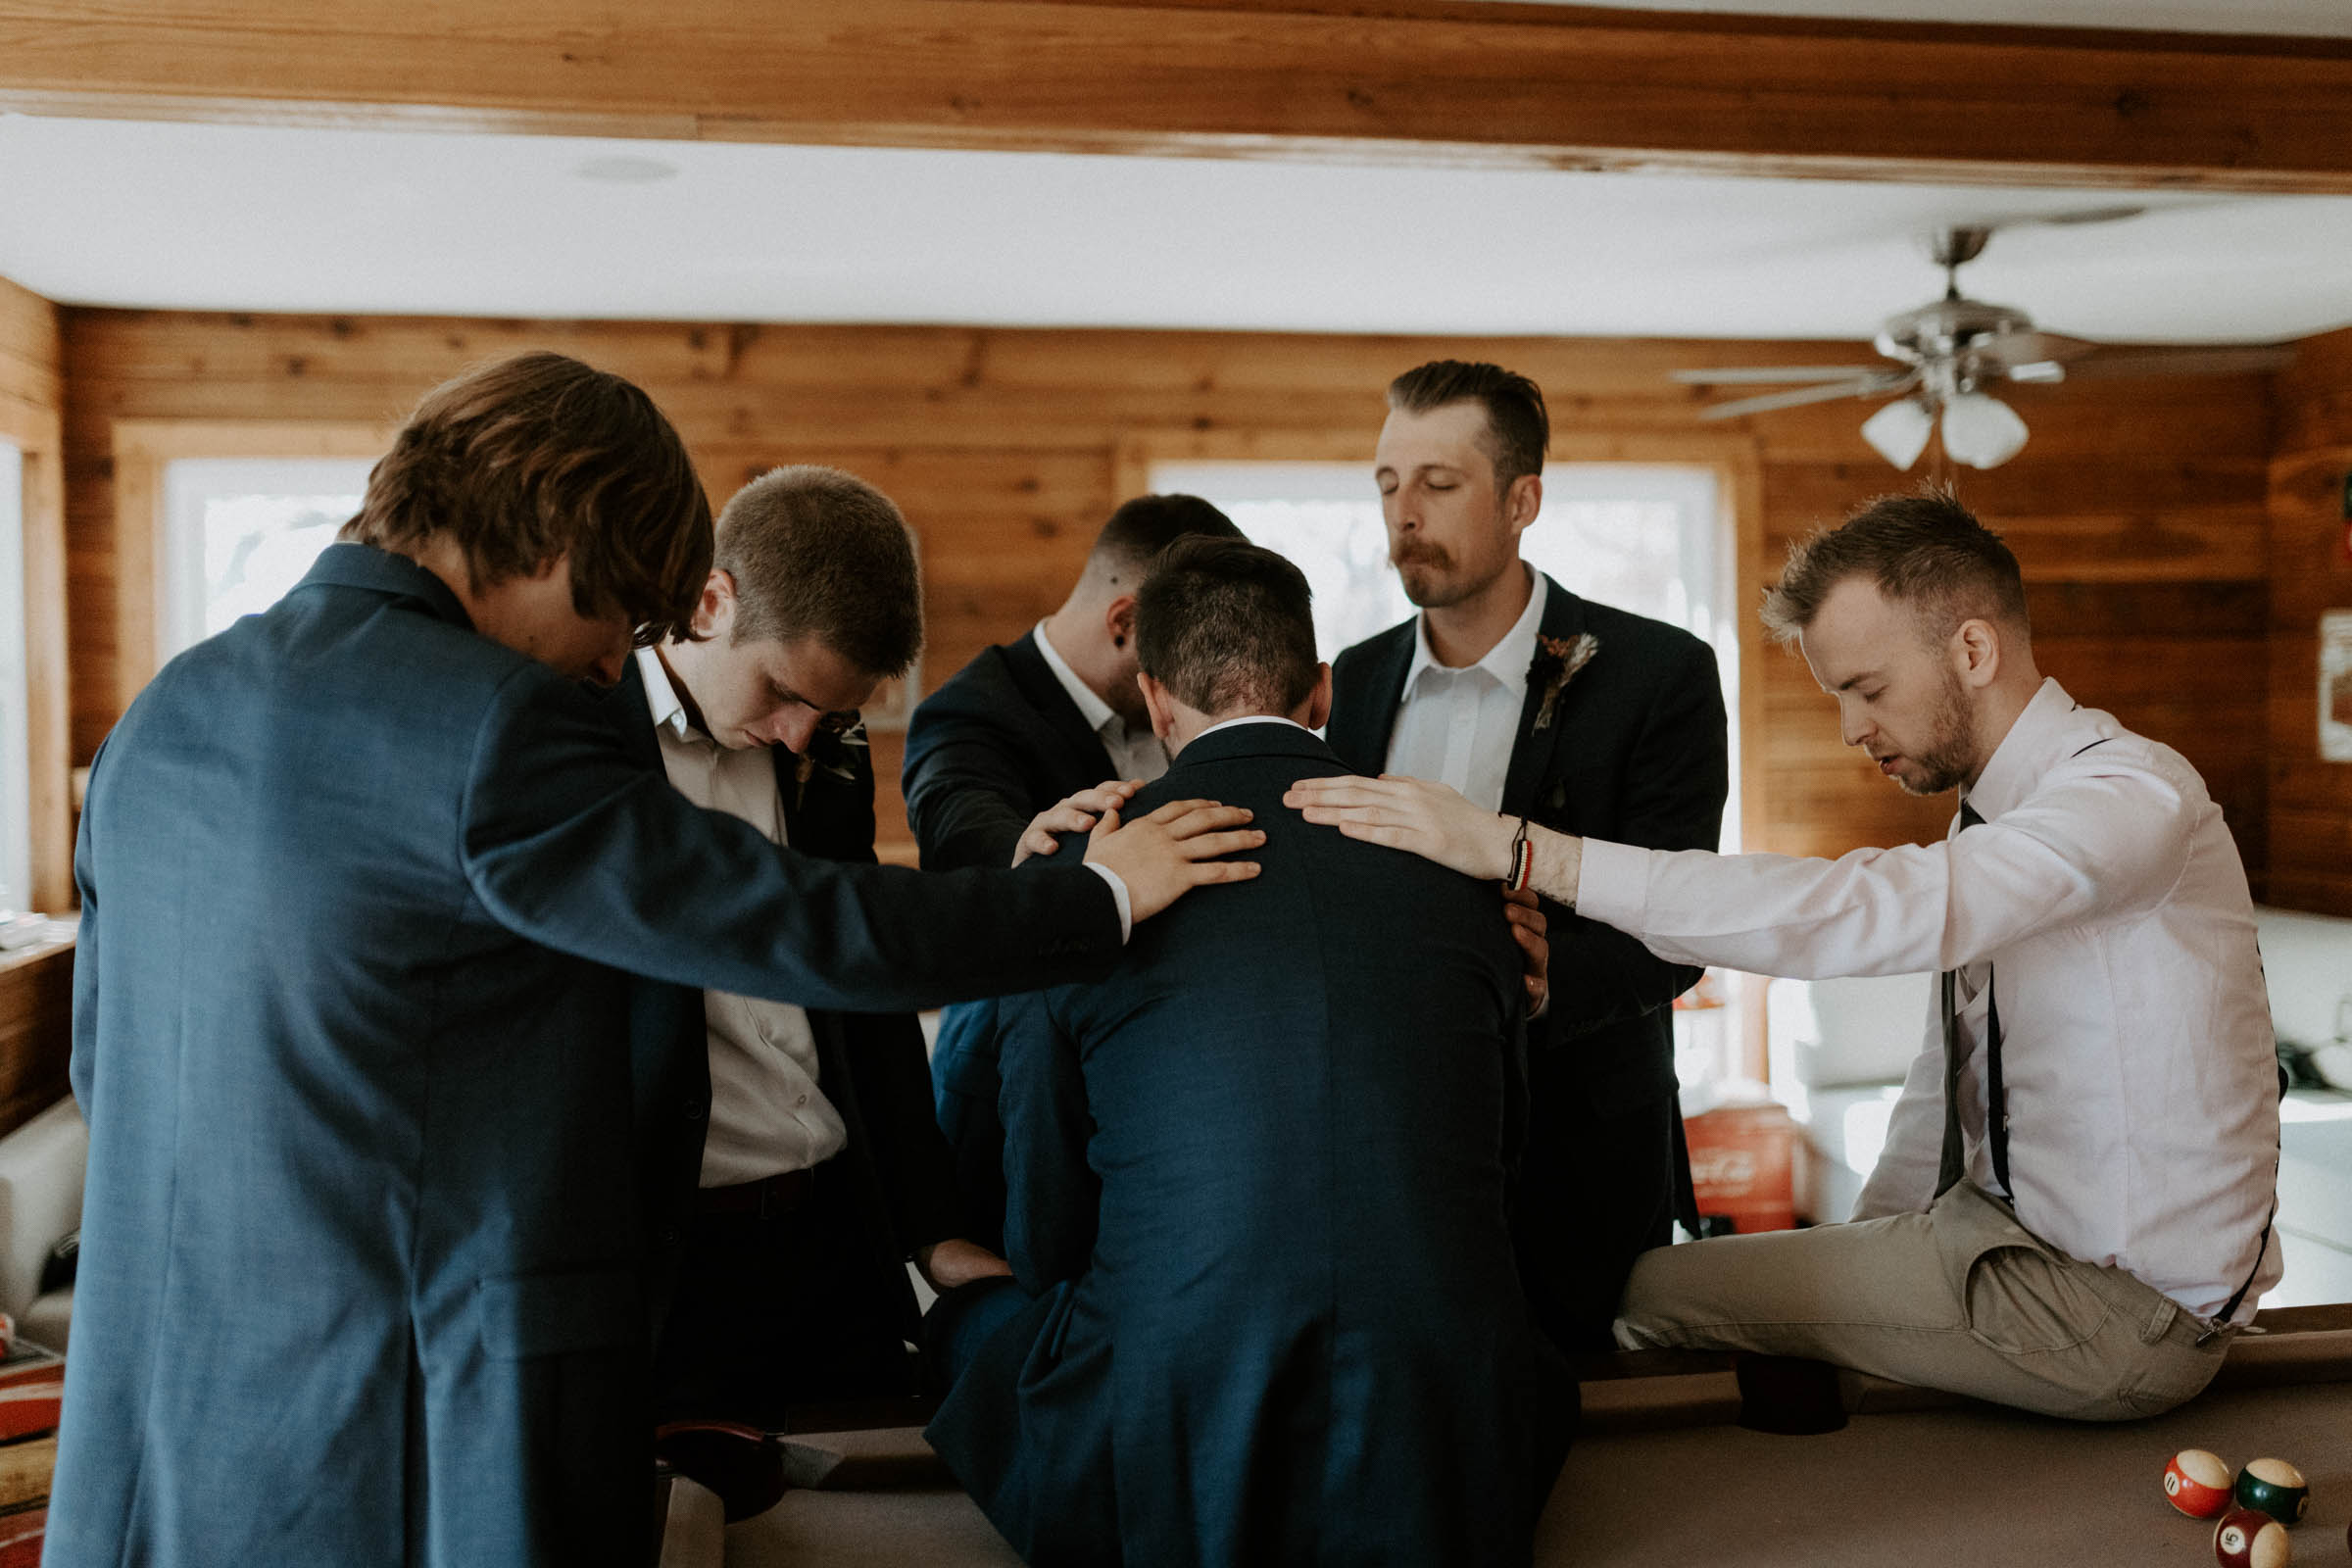 Groomsmen praying around the groom for his wedding day